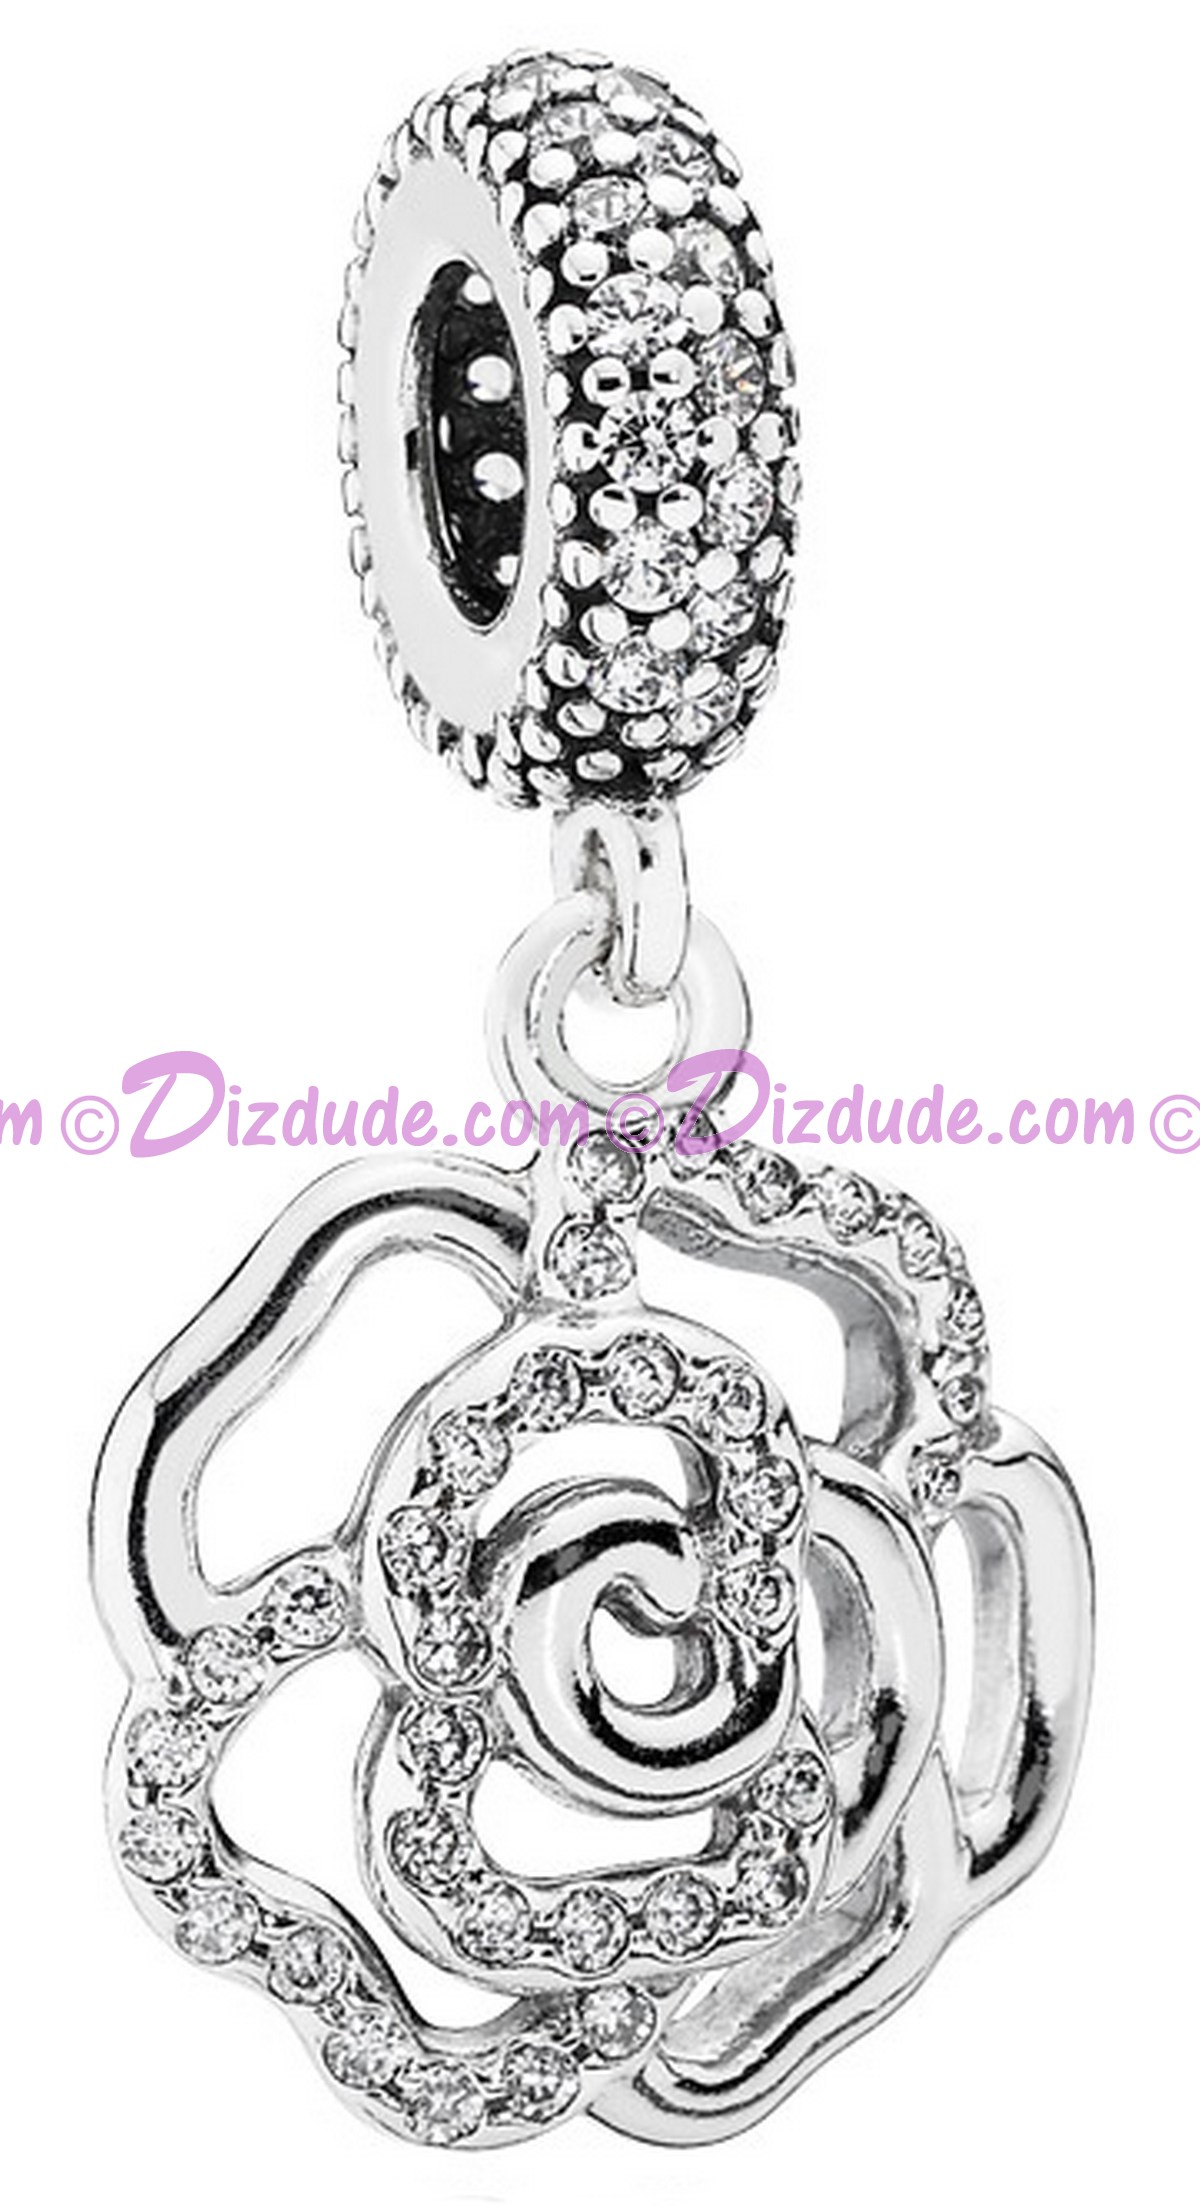 Disney Pandora Shimmering Rose Dangle Charm with Cubic Zirconias - Mothers Day Collection 2015